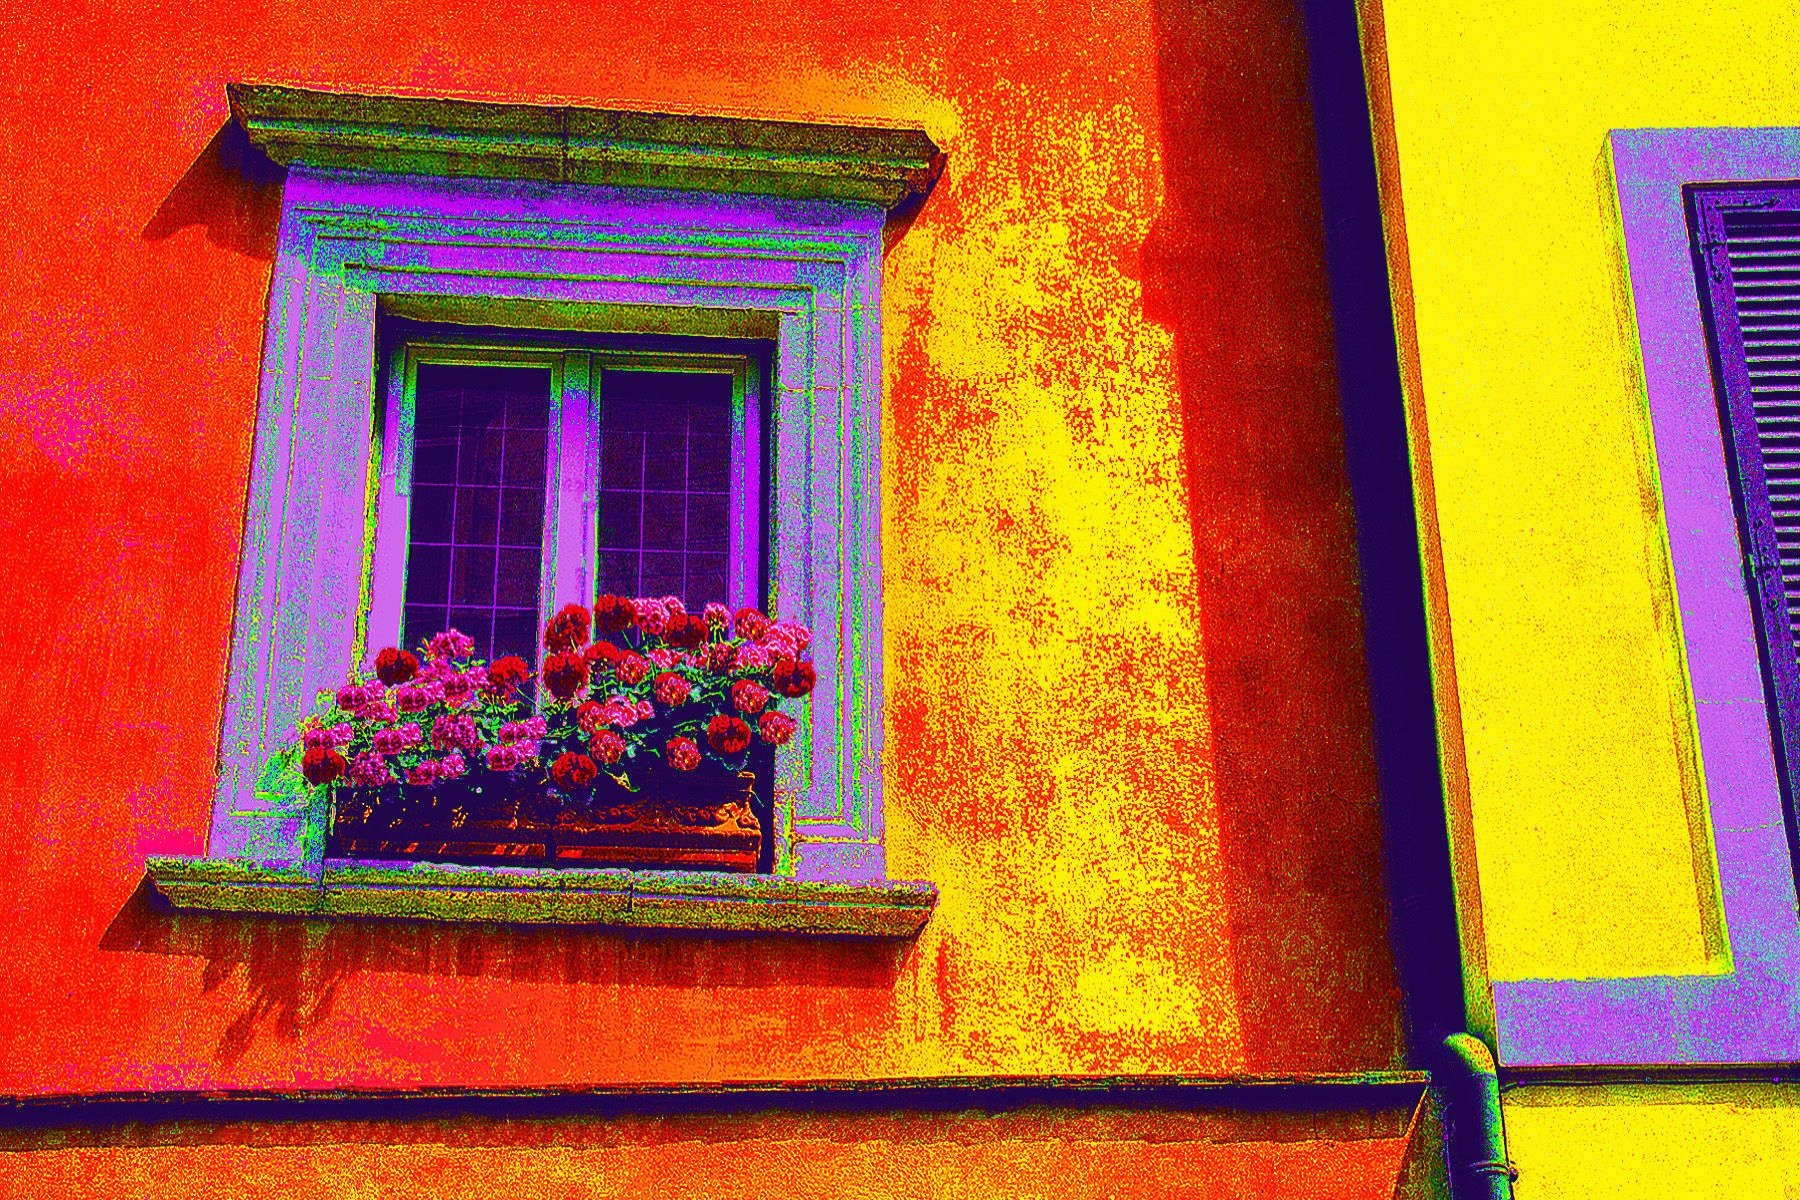 7_0_123_1i_gottlieb_portofino_window.jpg